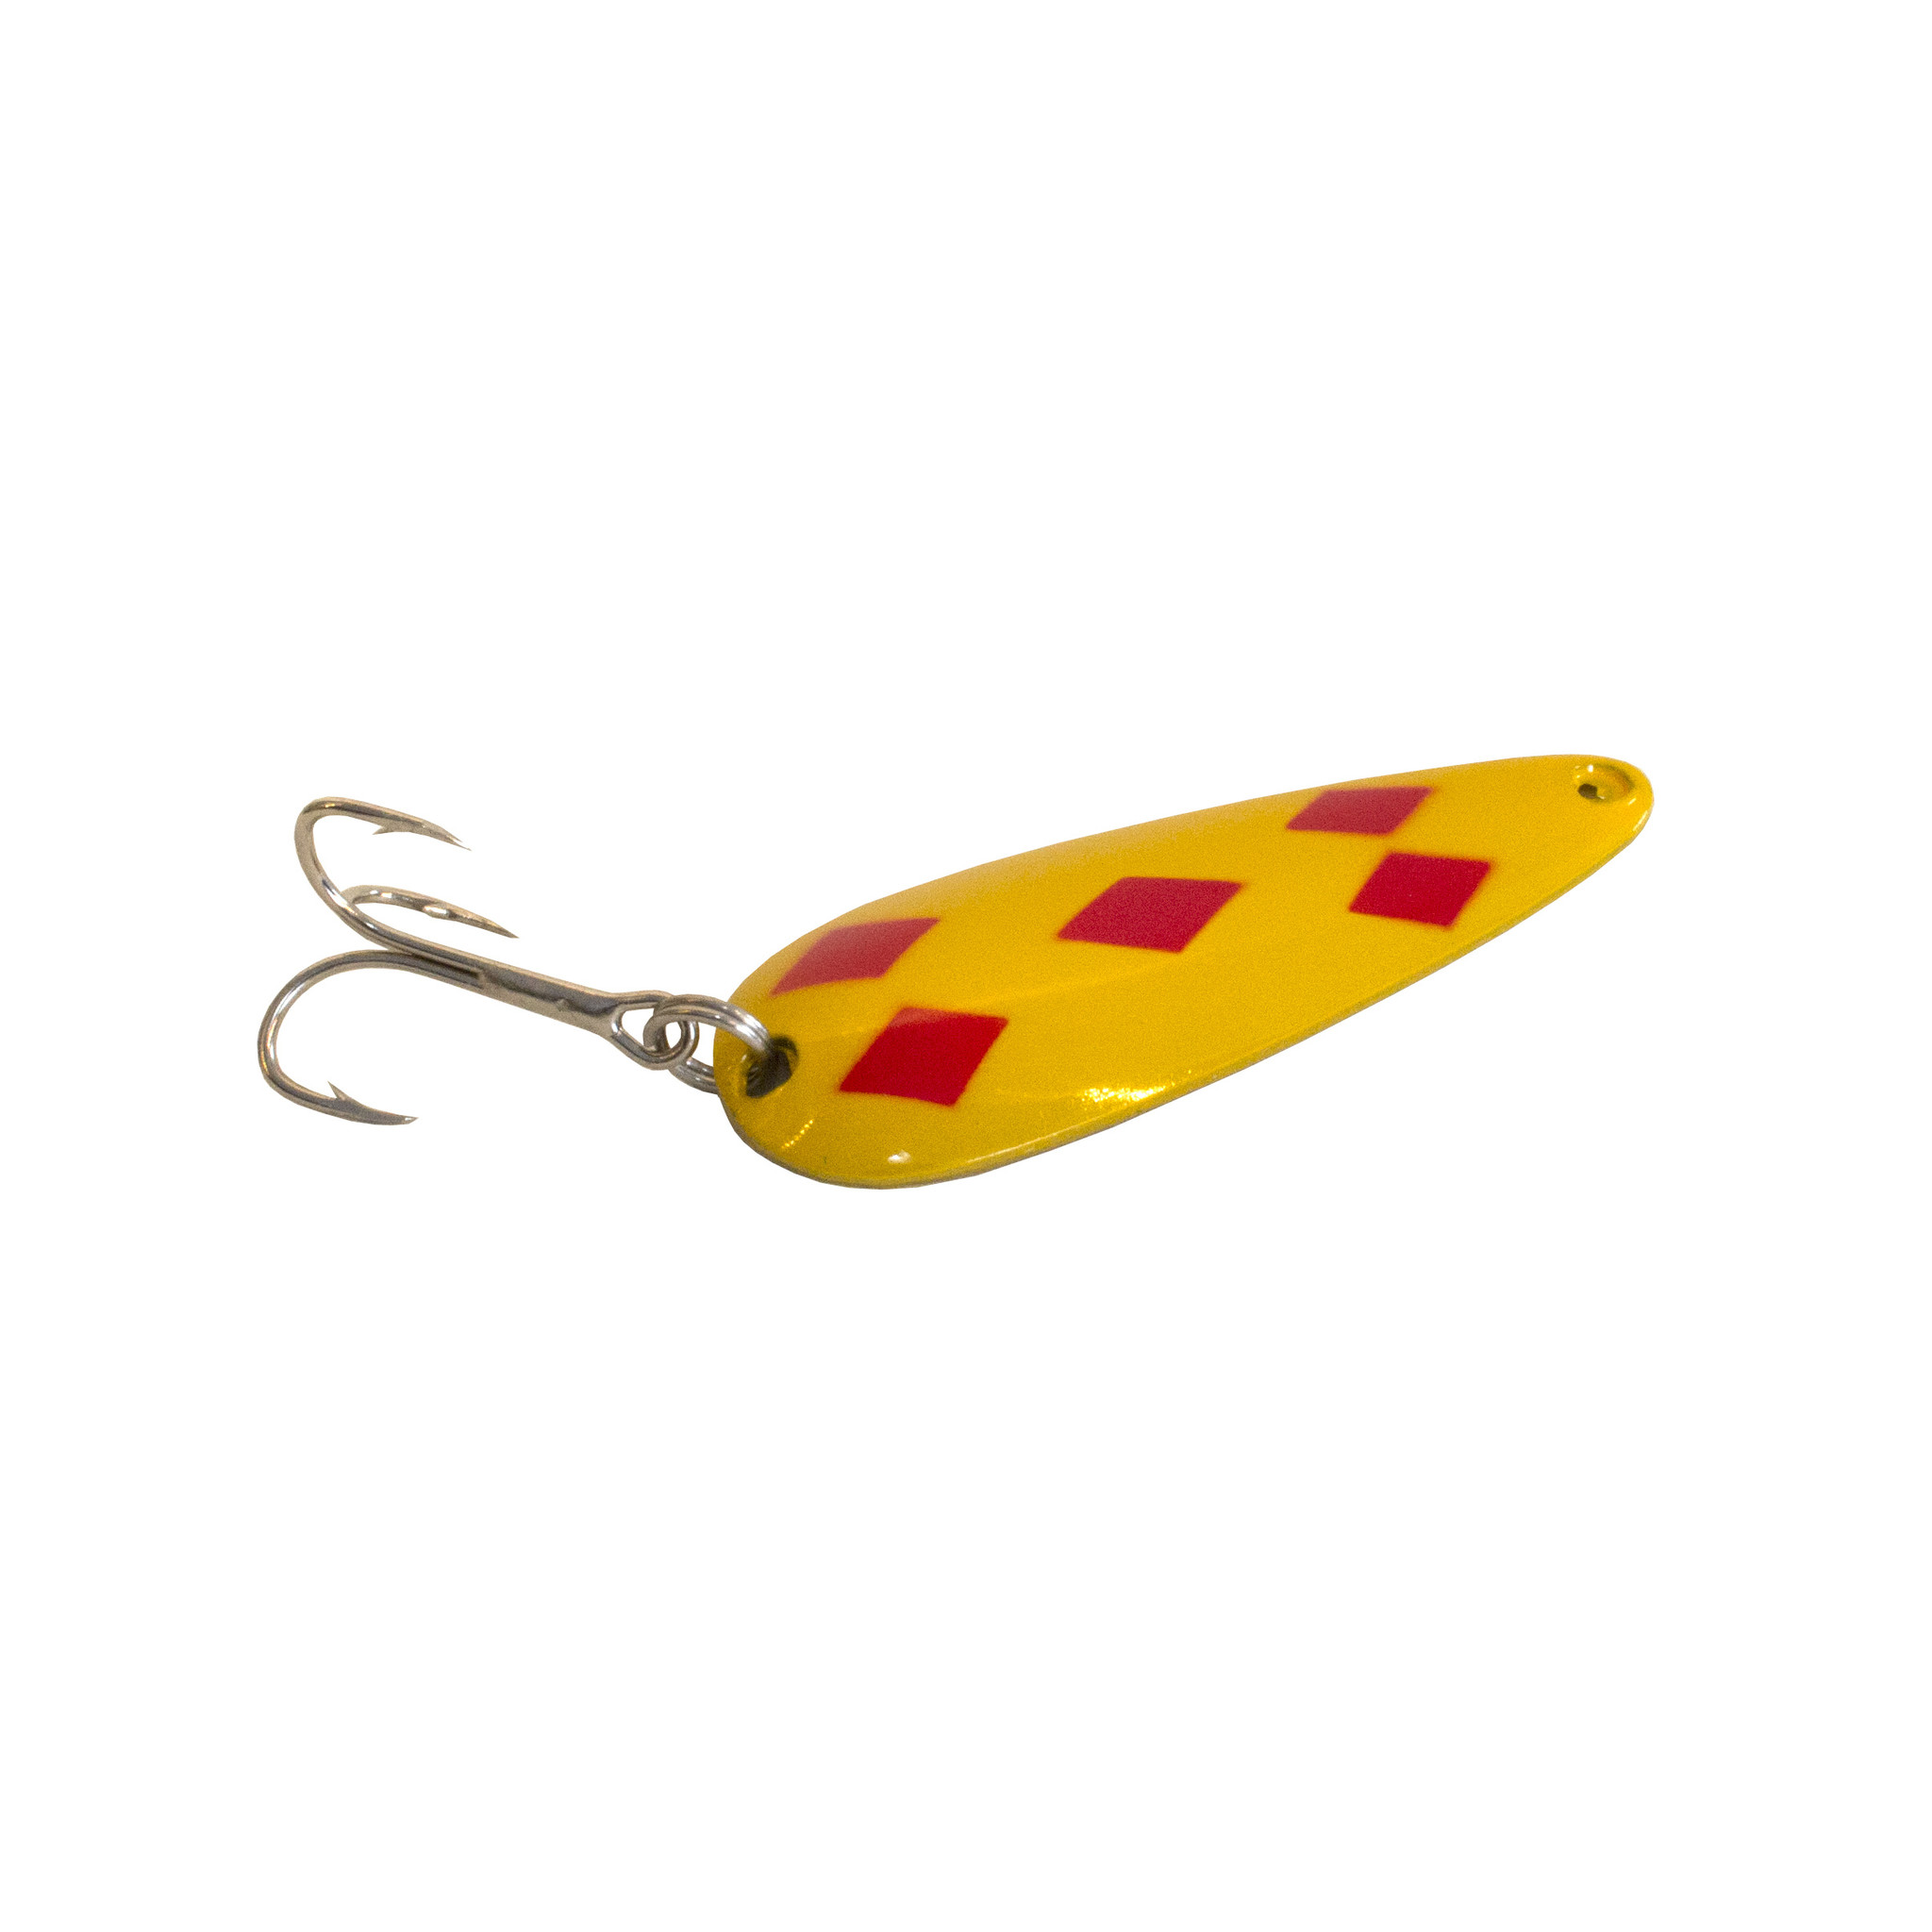 Len Thompson Len Thompson Original Series Yellow/Red Diamond Spoon